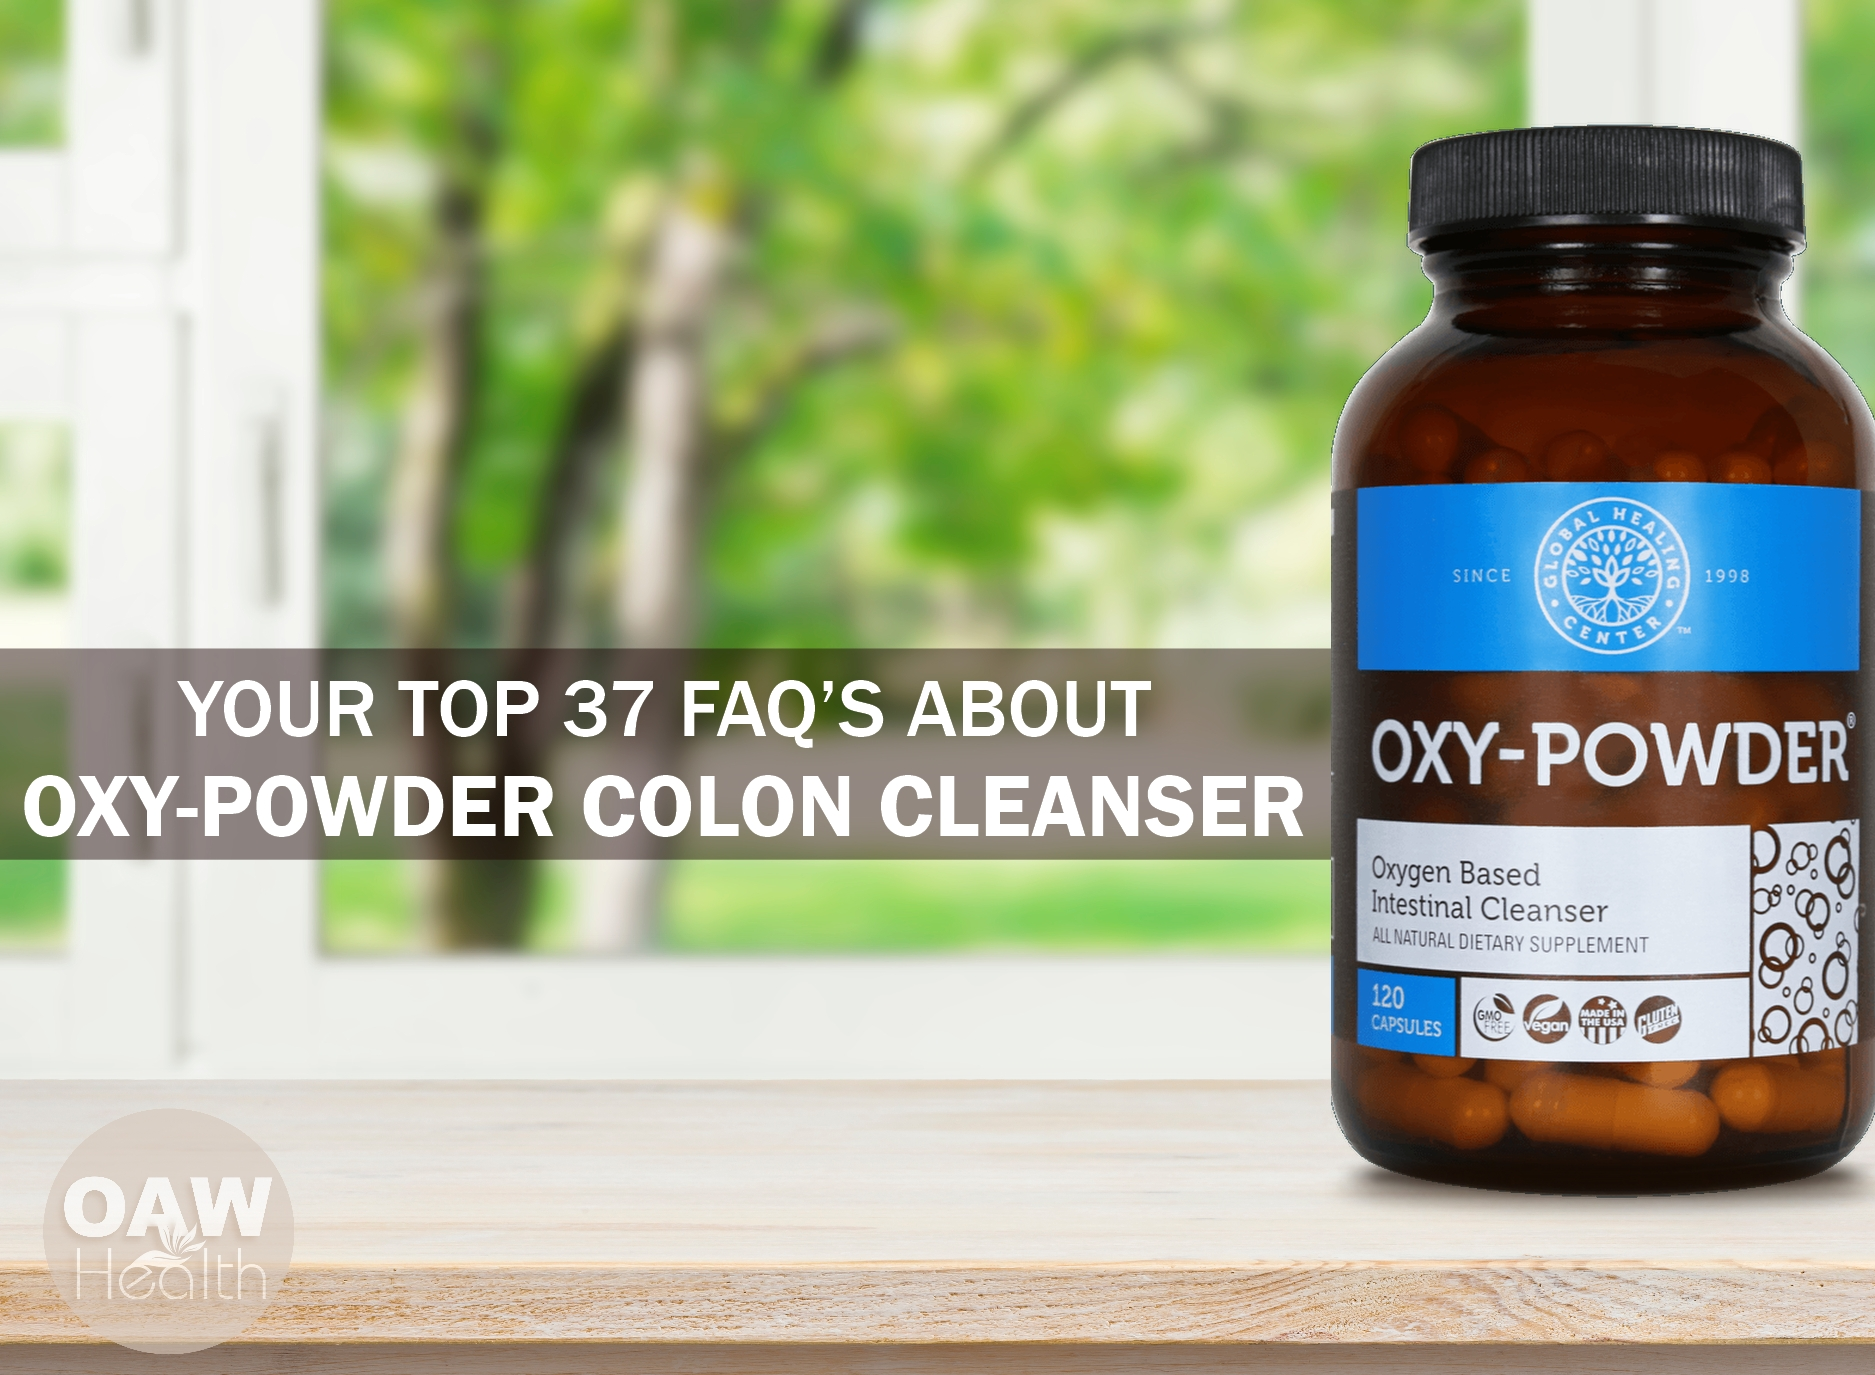 Your Top 37 FAQs about Oxy-Powder Colon Cleanser